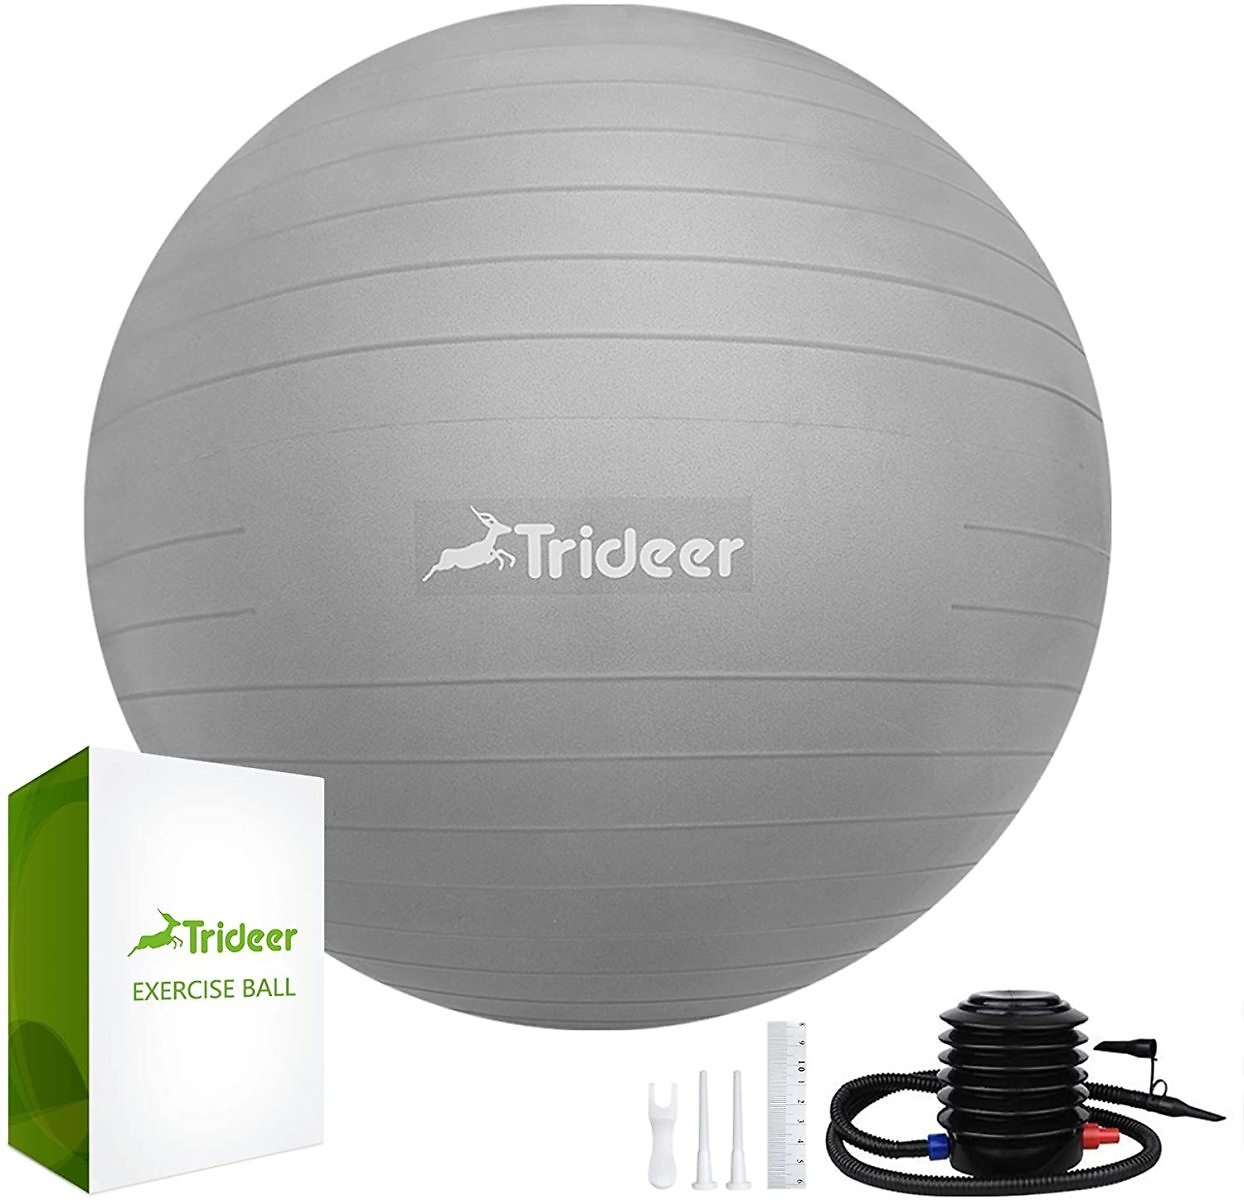 24% Off Trideer Exercise Ball Extra Thick Yoga Ball